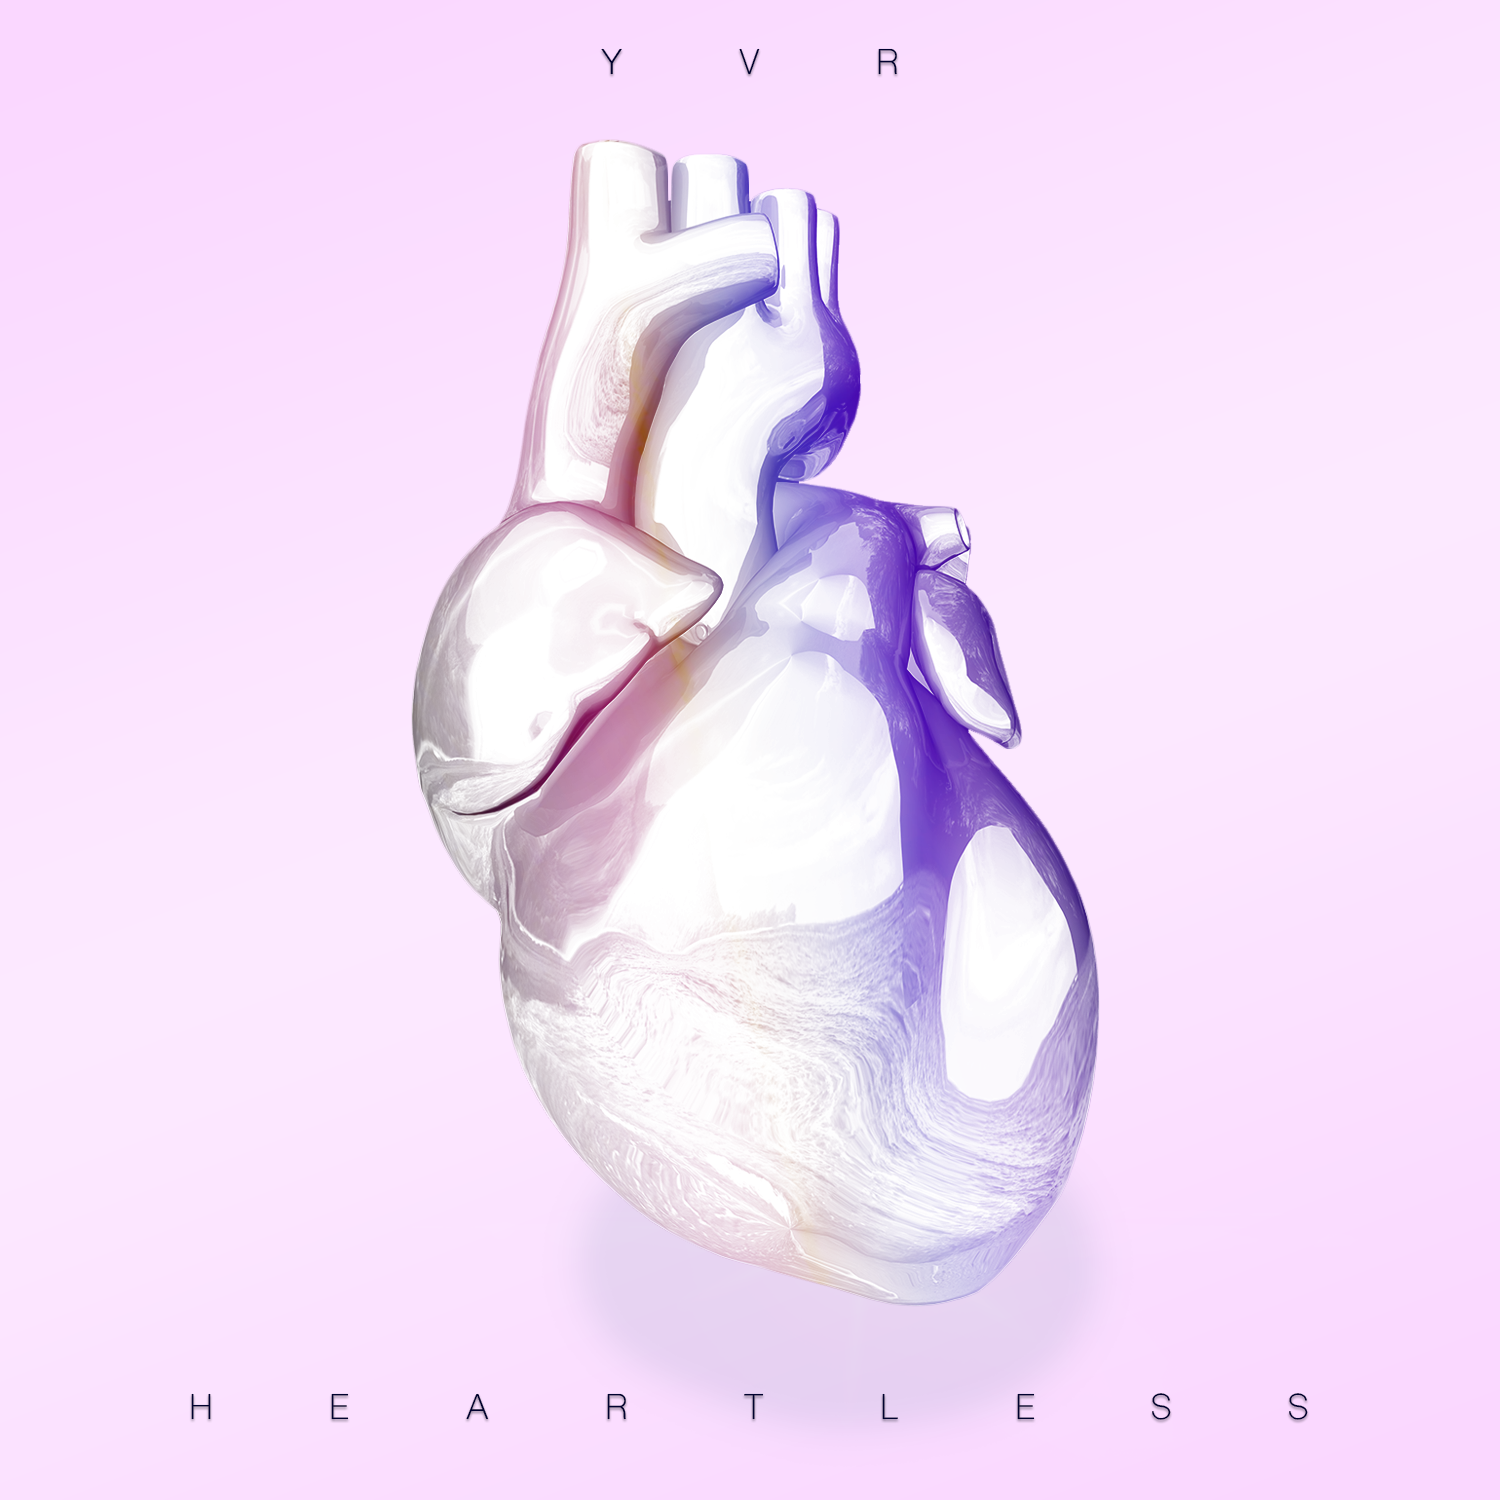 'Heartless' Single Cover Art